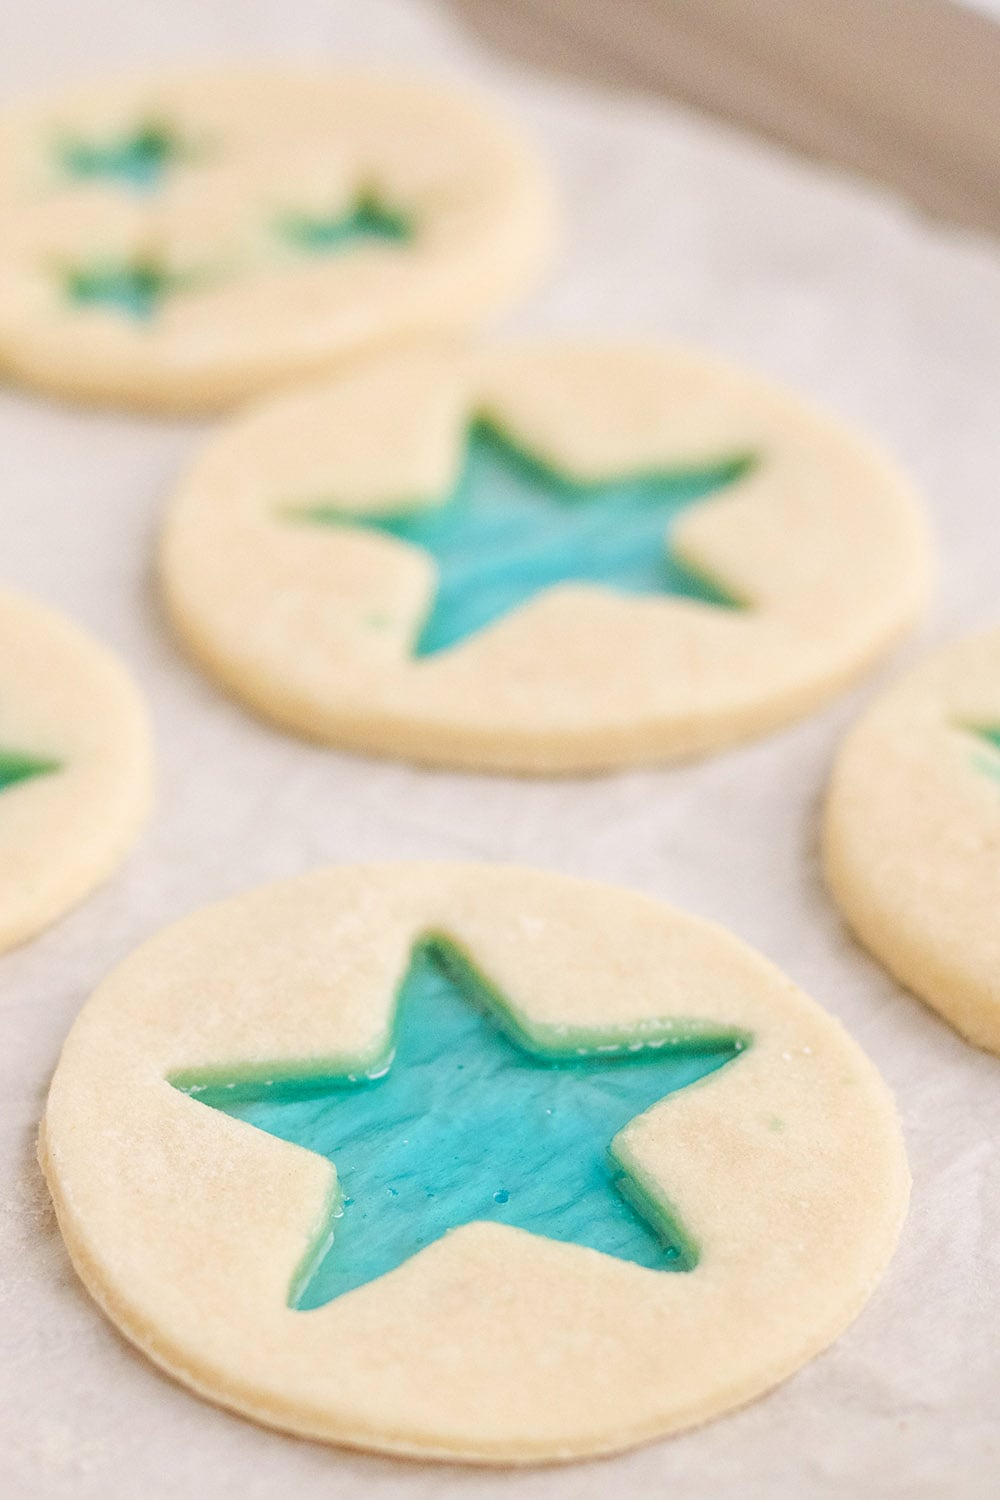 Stained-glass star cookies ready to bake on a baking sheet.